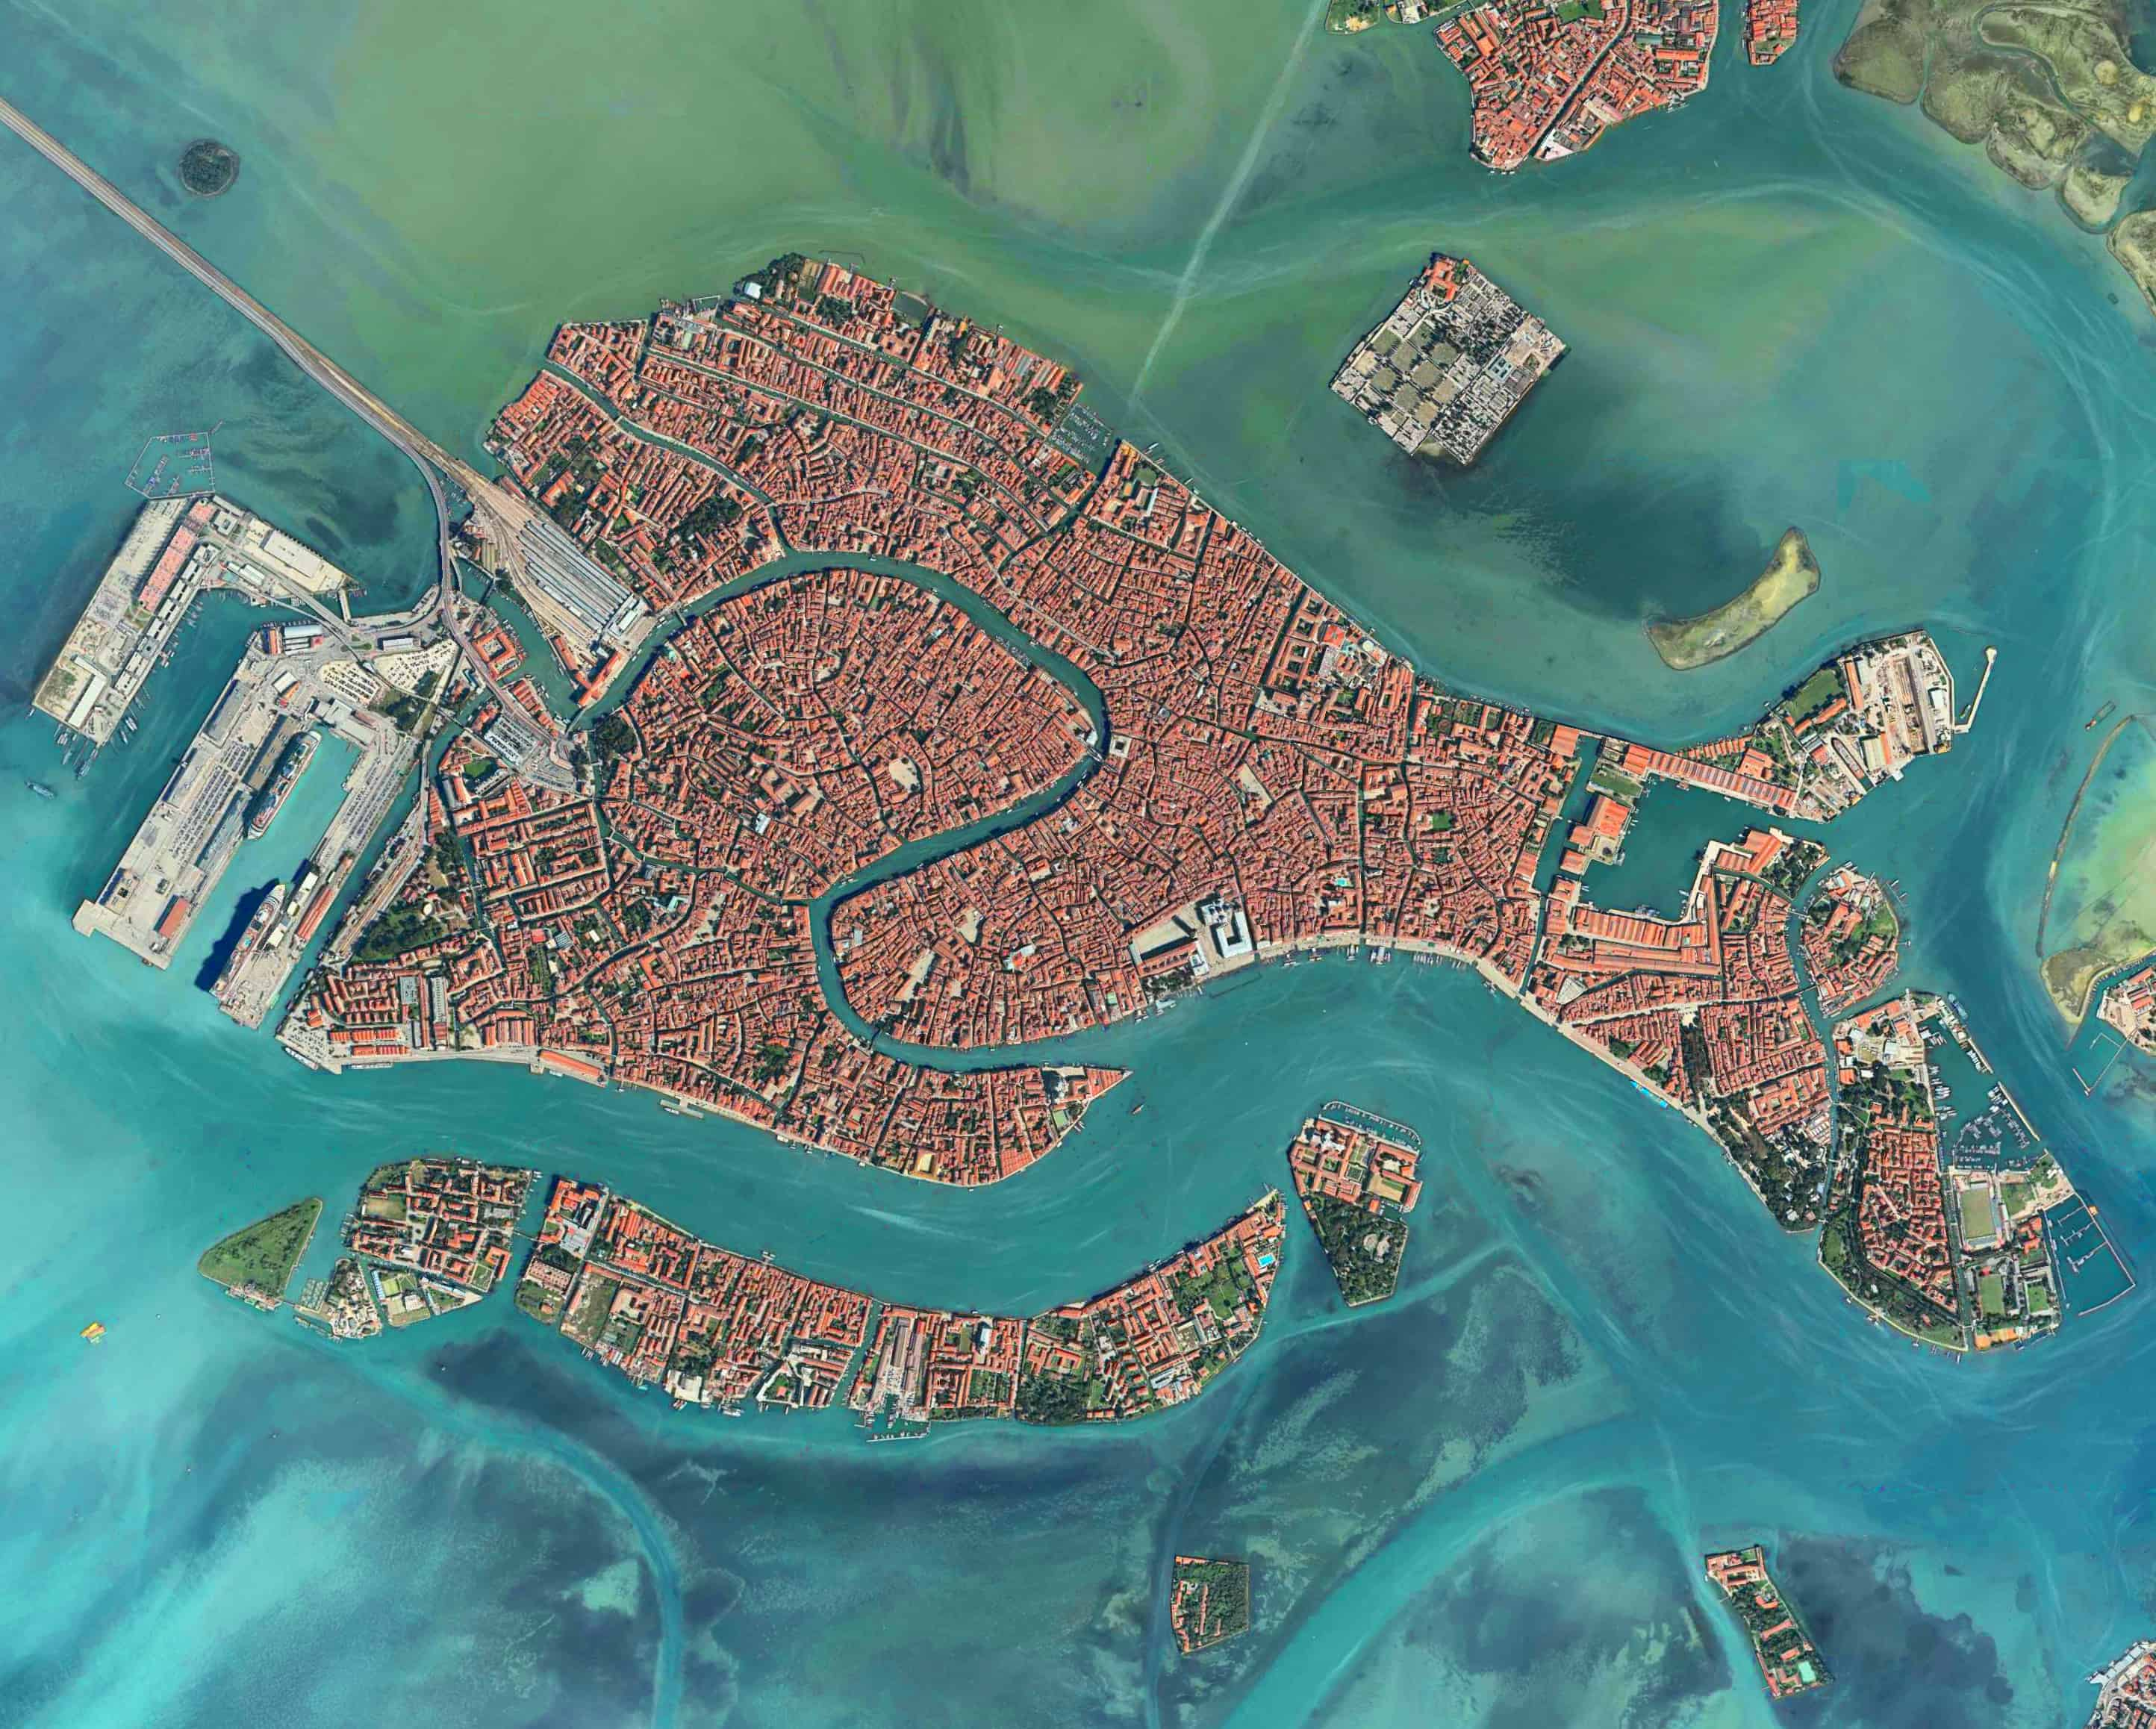 Venice, Italy - Aerial View - Urban Pattern - Red color Houses - Urban Planning